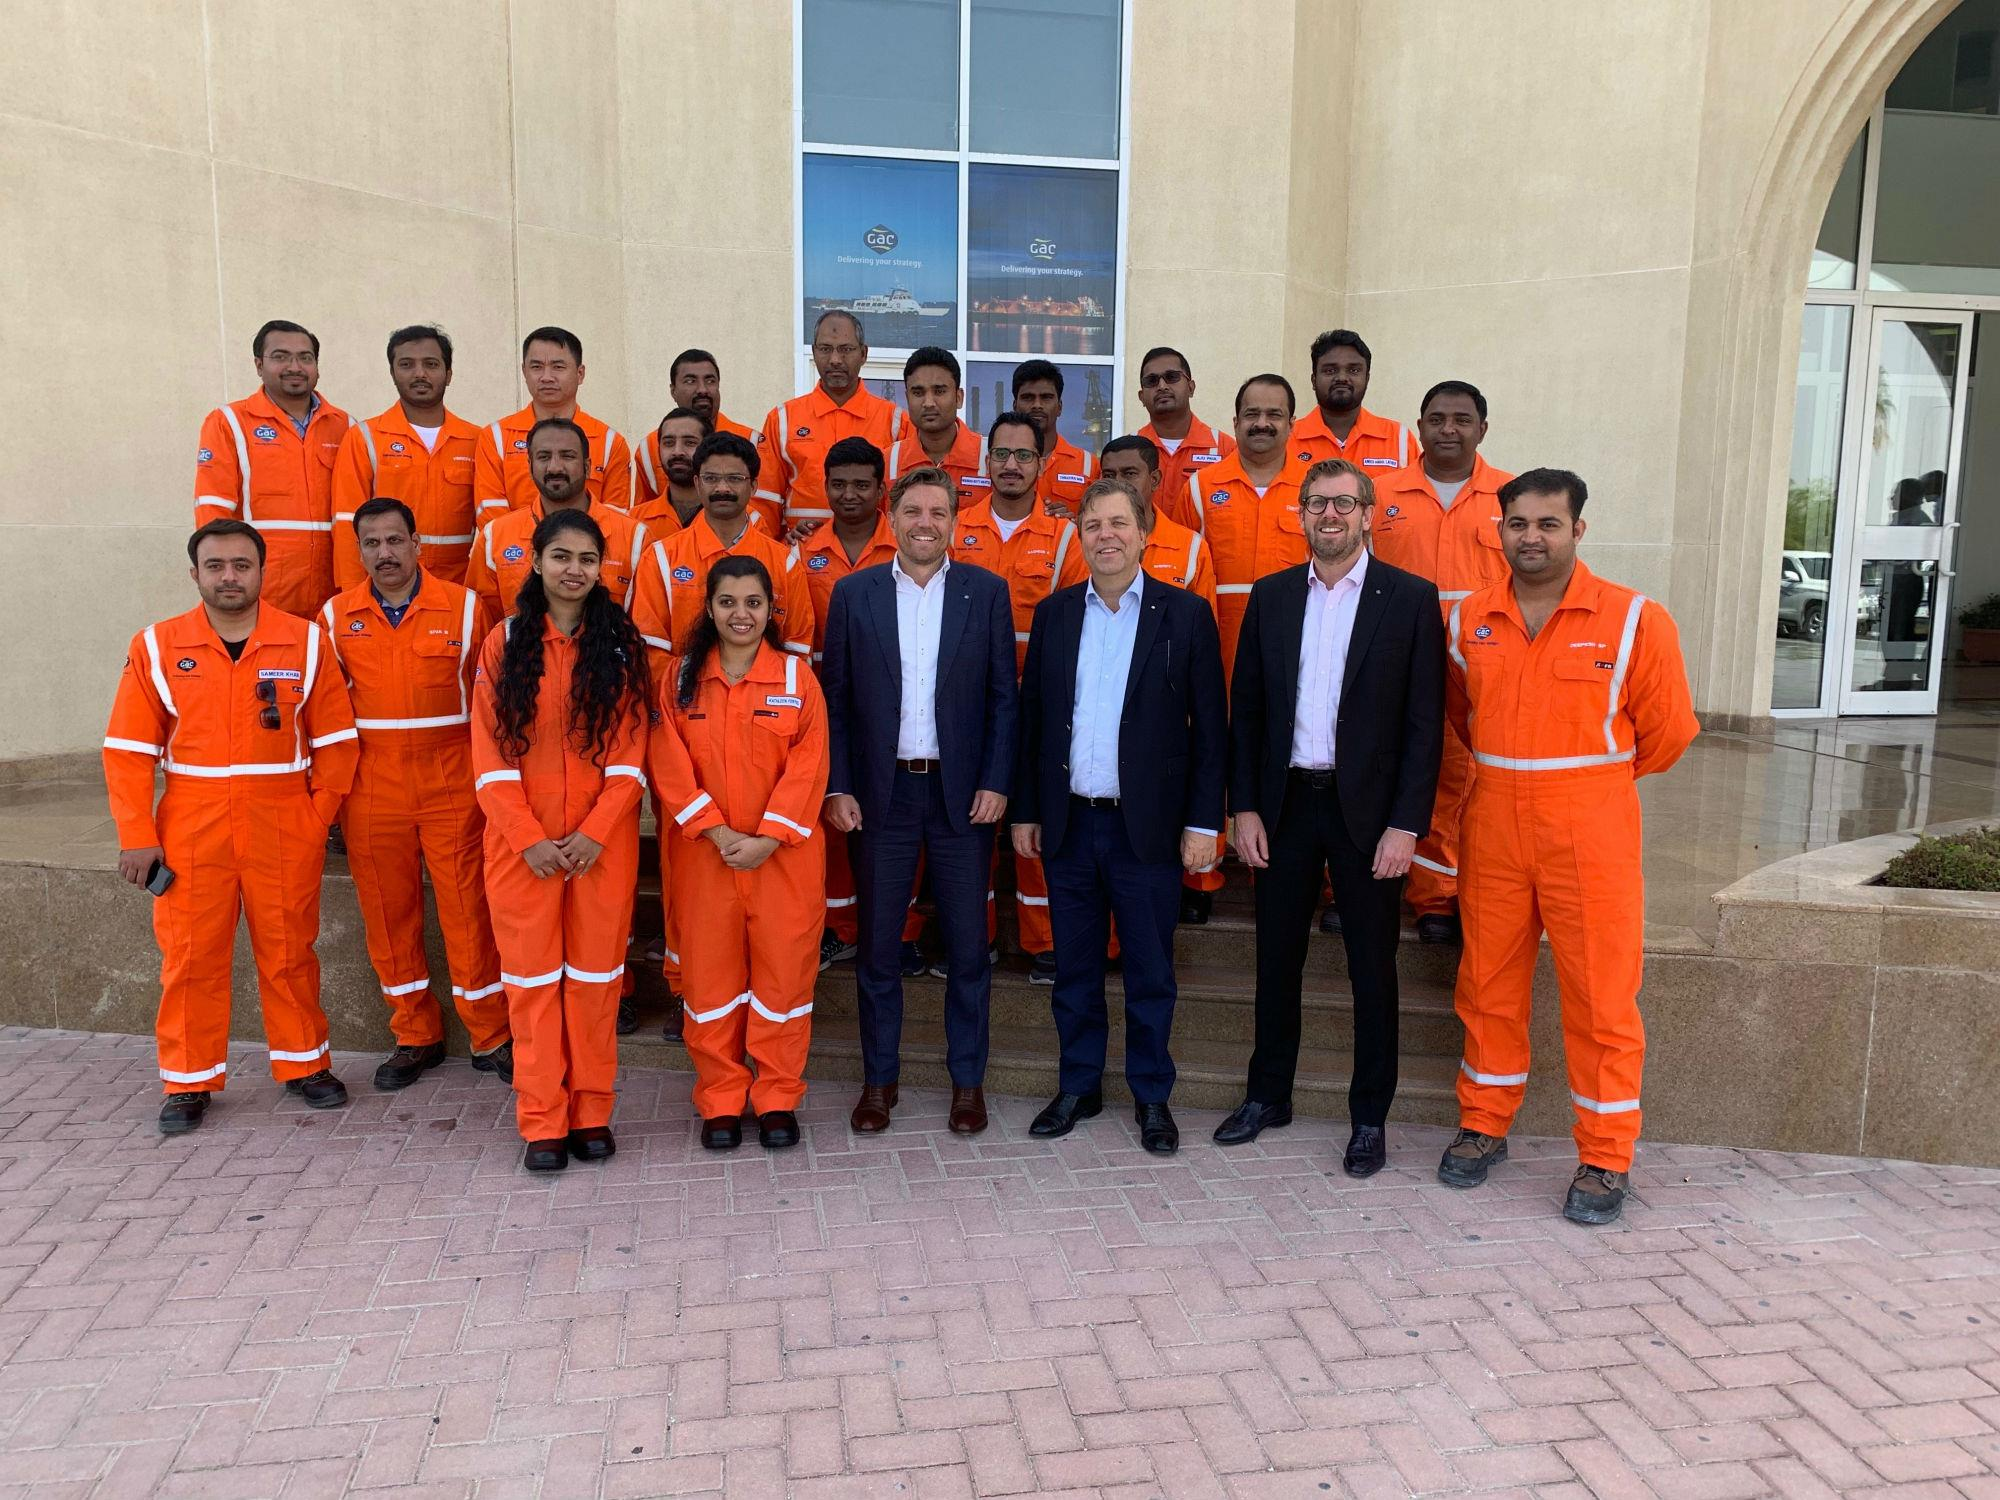 GAC Qatar general manager Daniel Nordberg, GAC Group president Bengt Ekstrand and GAC Group vice president for the Middle East Fredrik Nyström with the Ras Laffan team.